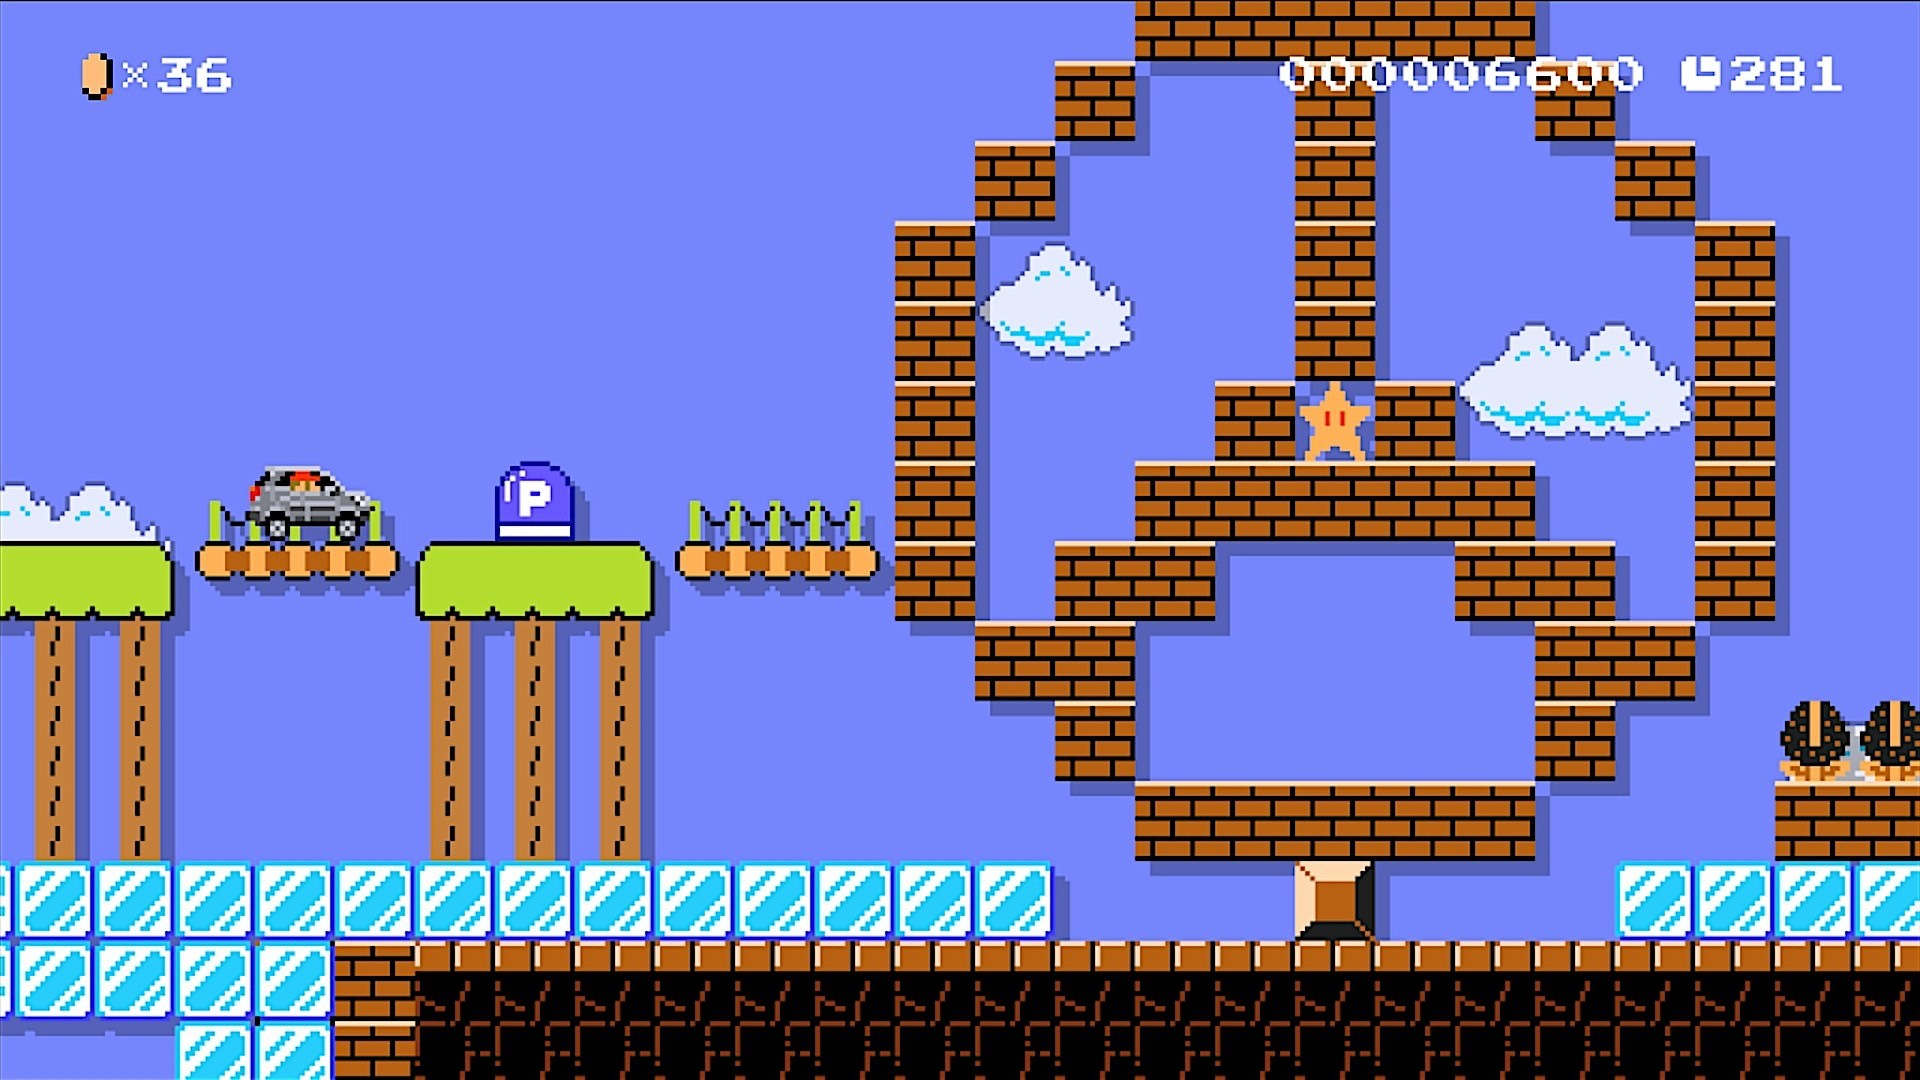 Anyone else think Super Mario Maker is too expensive?